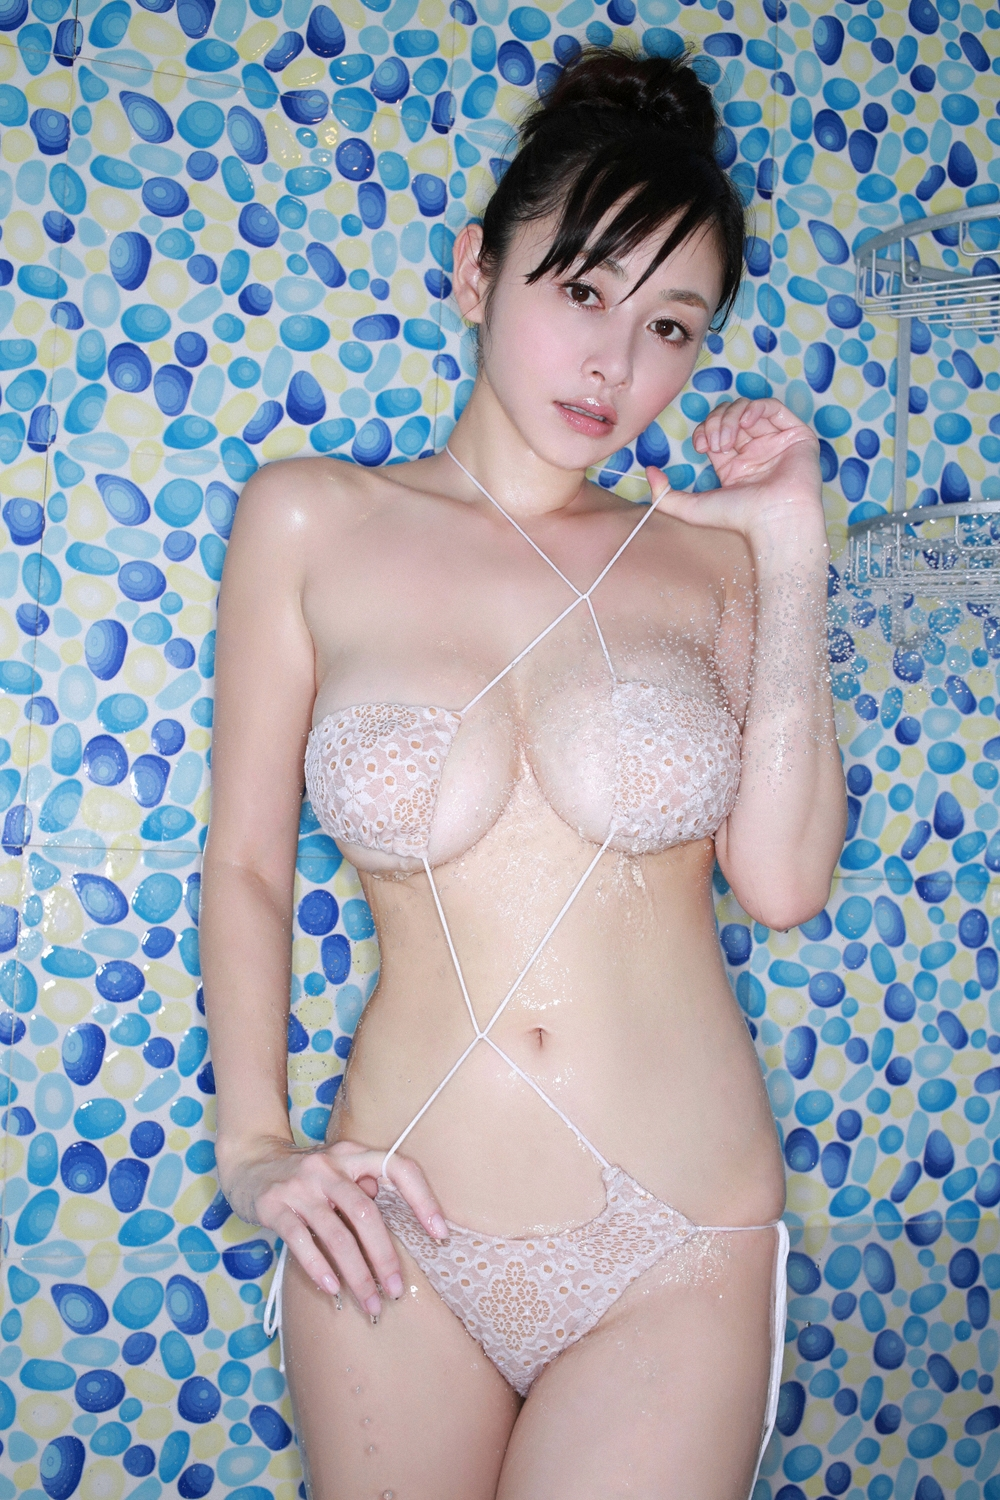 杉原杏璃 Anri Sugihara YS Web Vol 655 Pictures 100